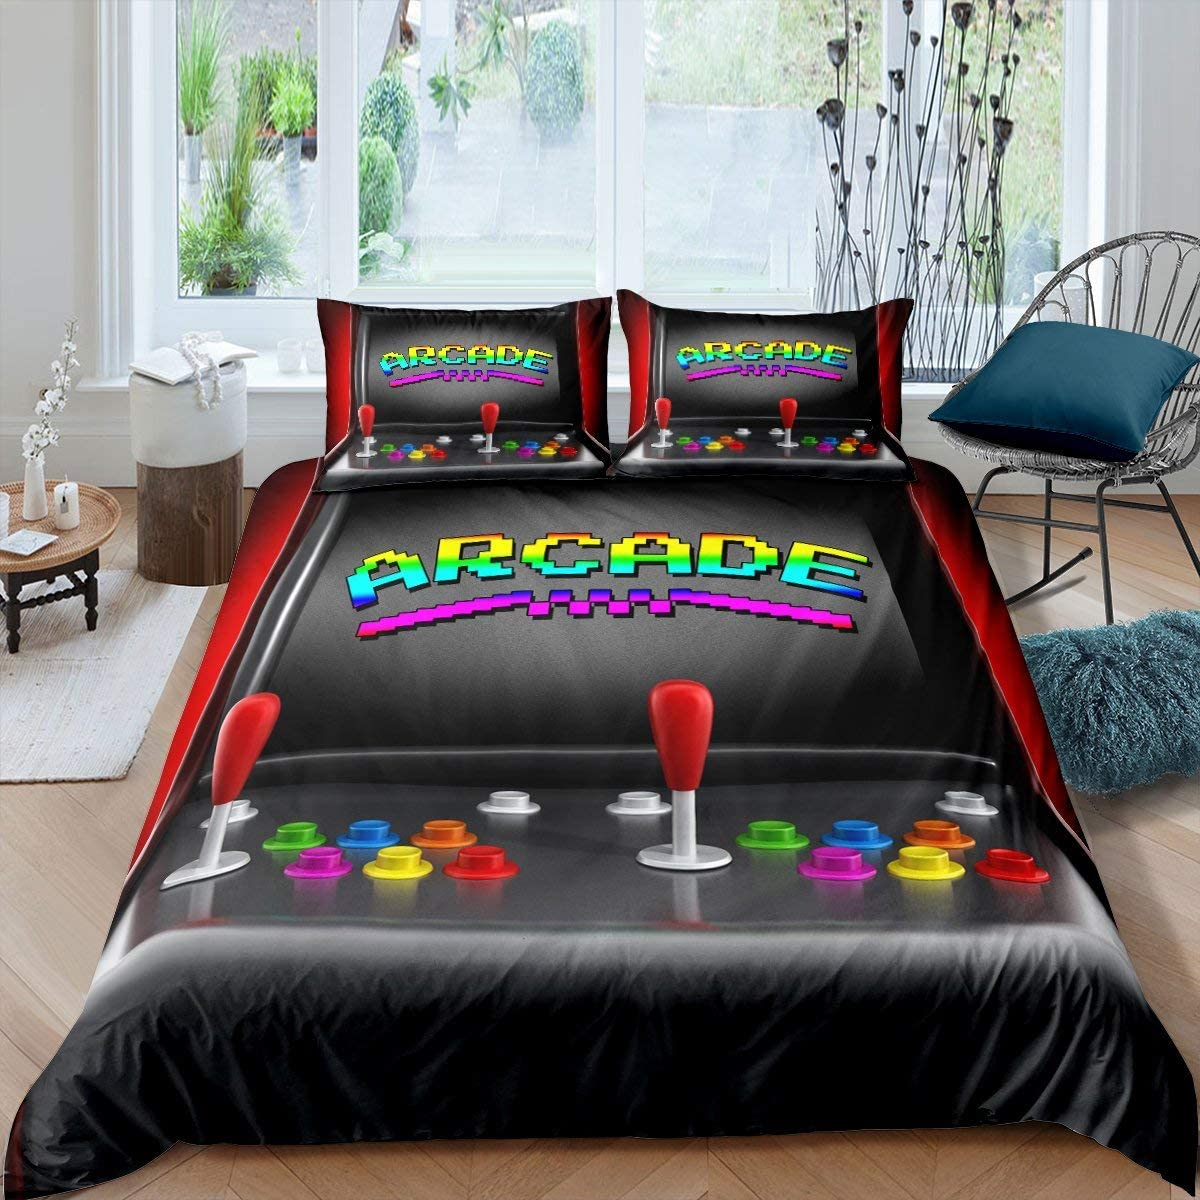 Erosebridal Gamer Bedding Set Queen Size Old Game Machine Comforter Cover Classic Arcade Retro Game Duvet Cover for Kids Boys Teen Novelty Action Buttons Bedspreads Cover 3Pcs Child Gaming Room Decor